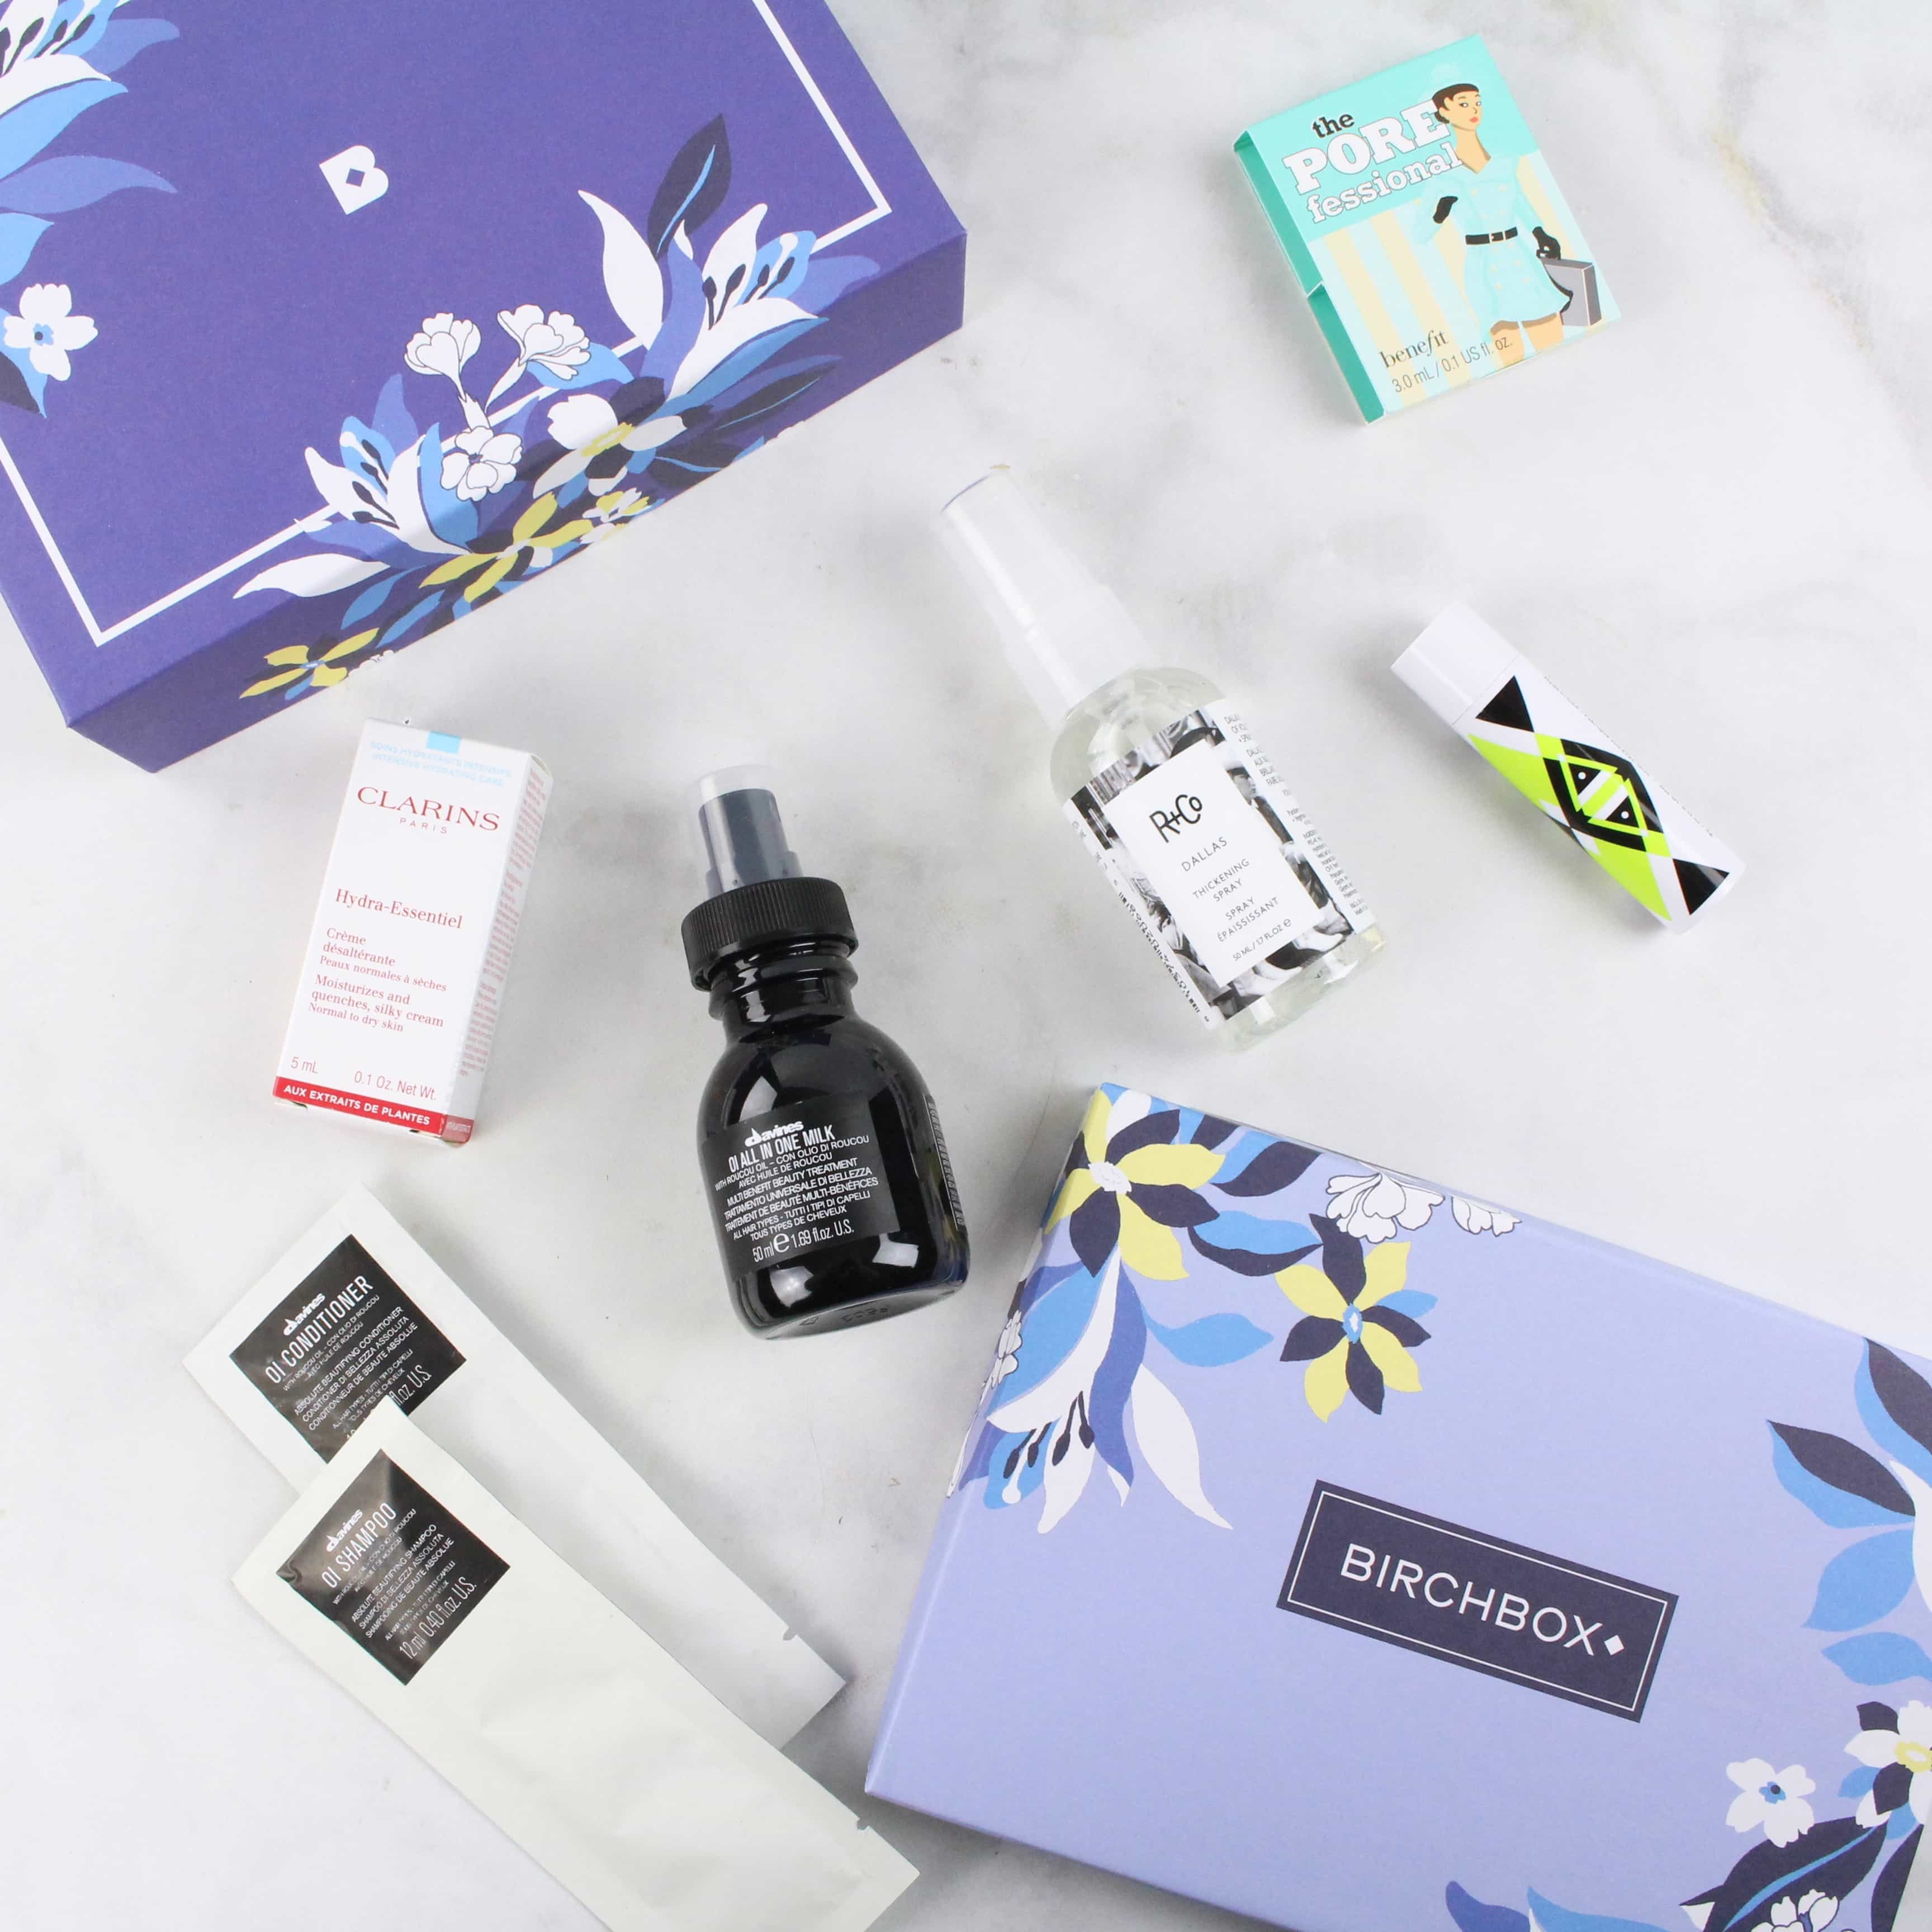 7e9b719e1a3 BirchBox is a discovery box that will send you 5 samples and deluxe size  makeup, skincare, and hair care products (with an occasional full-size  item!)